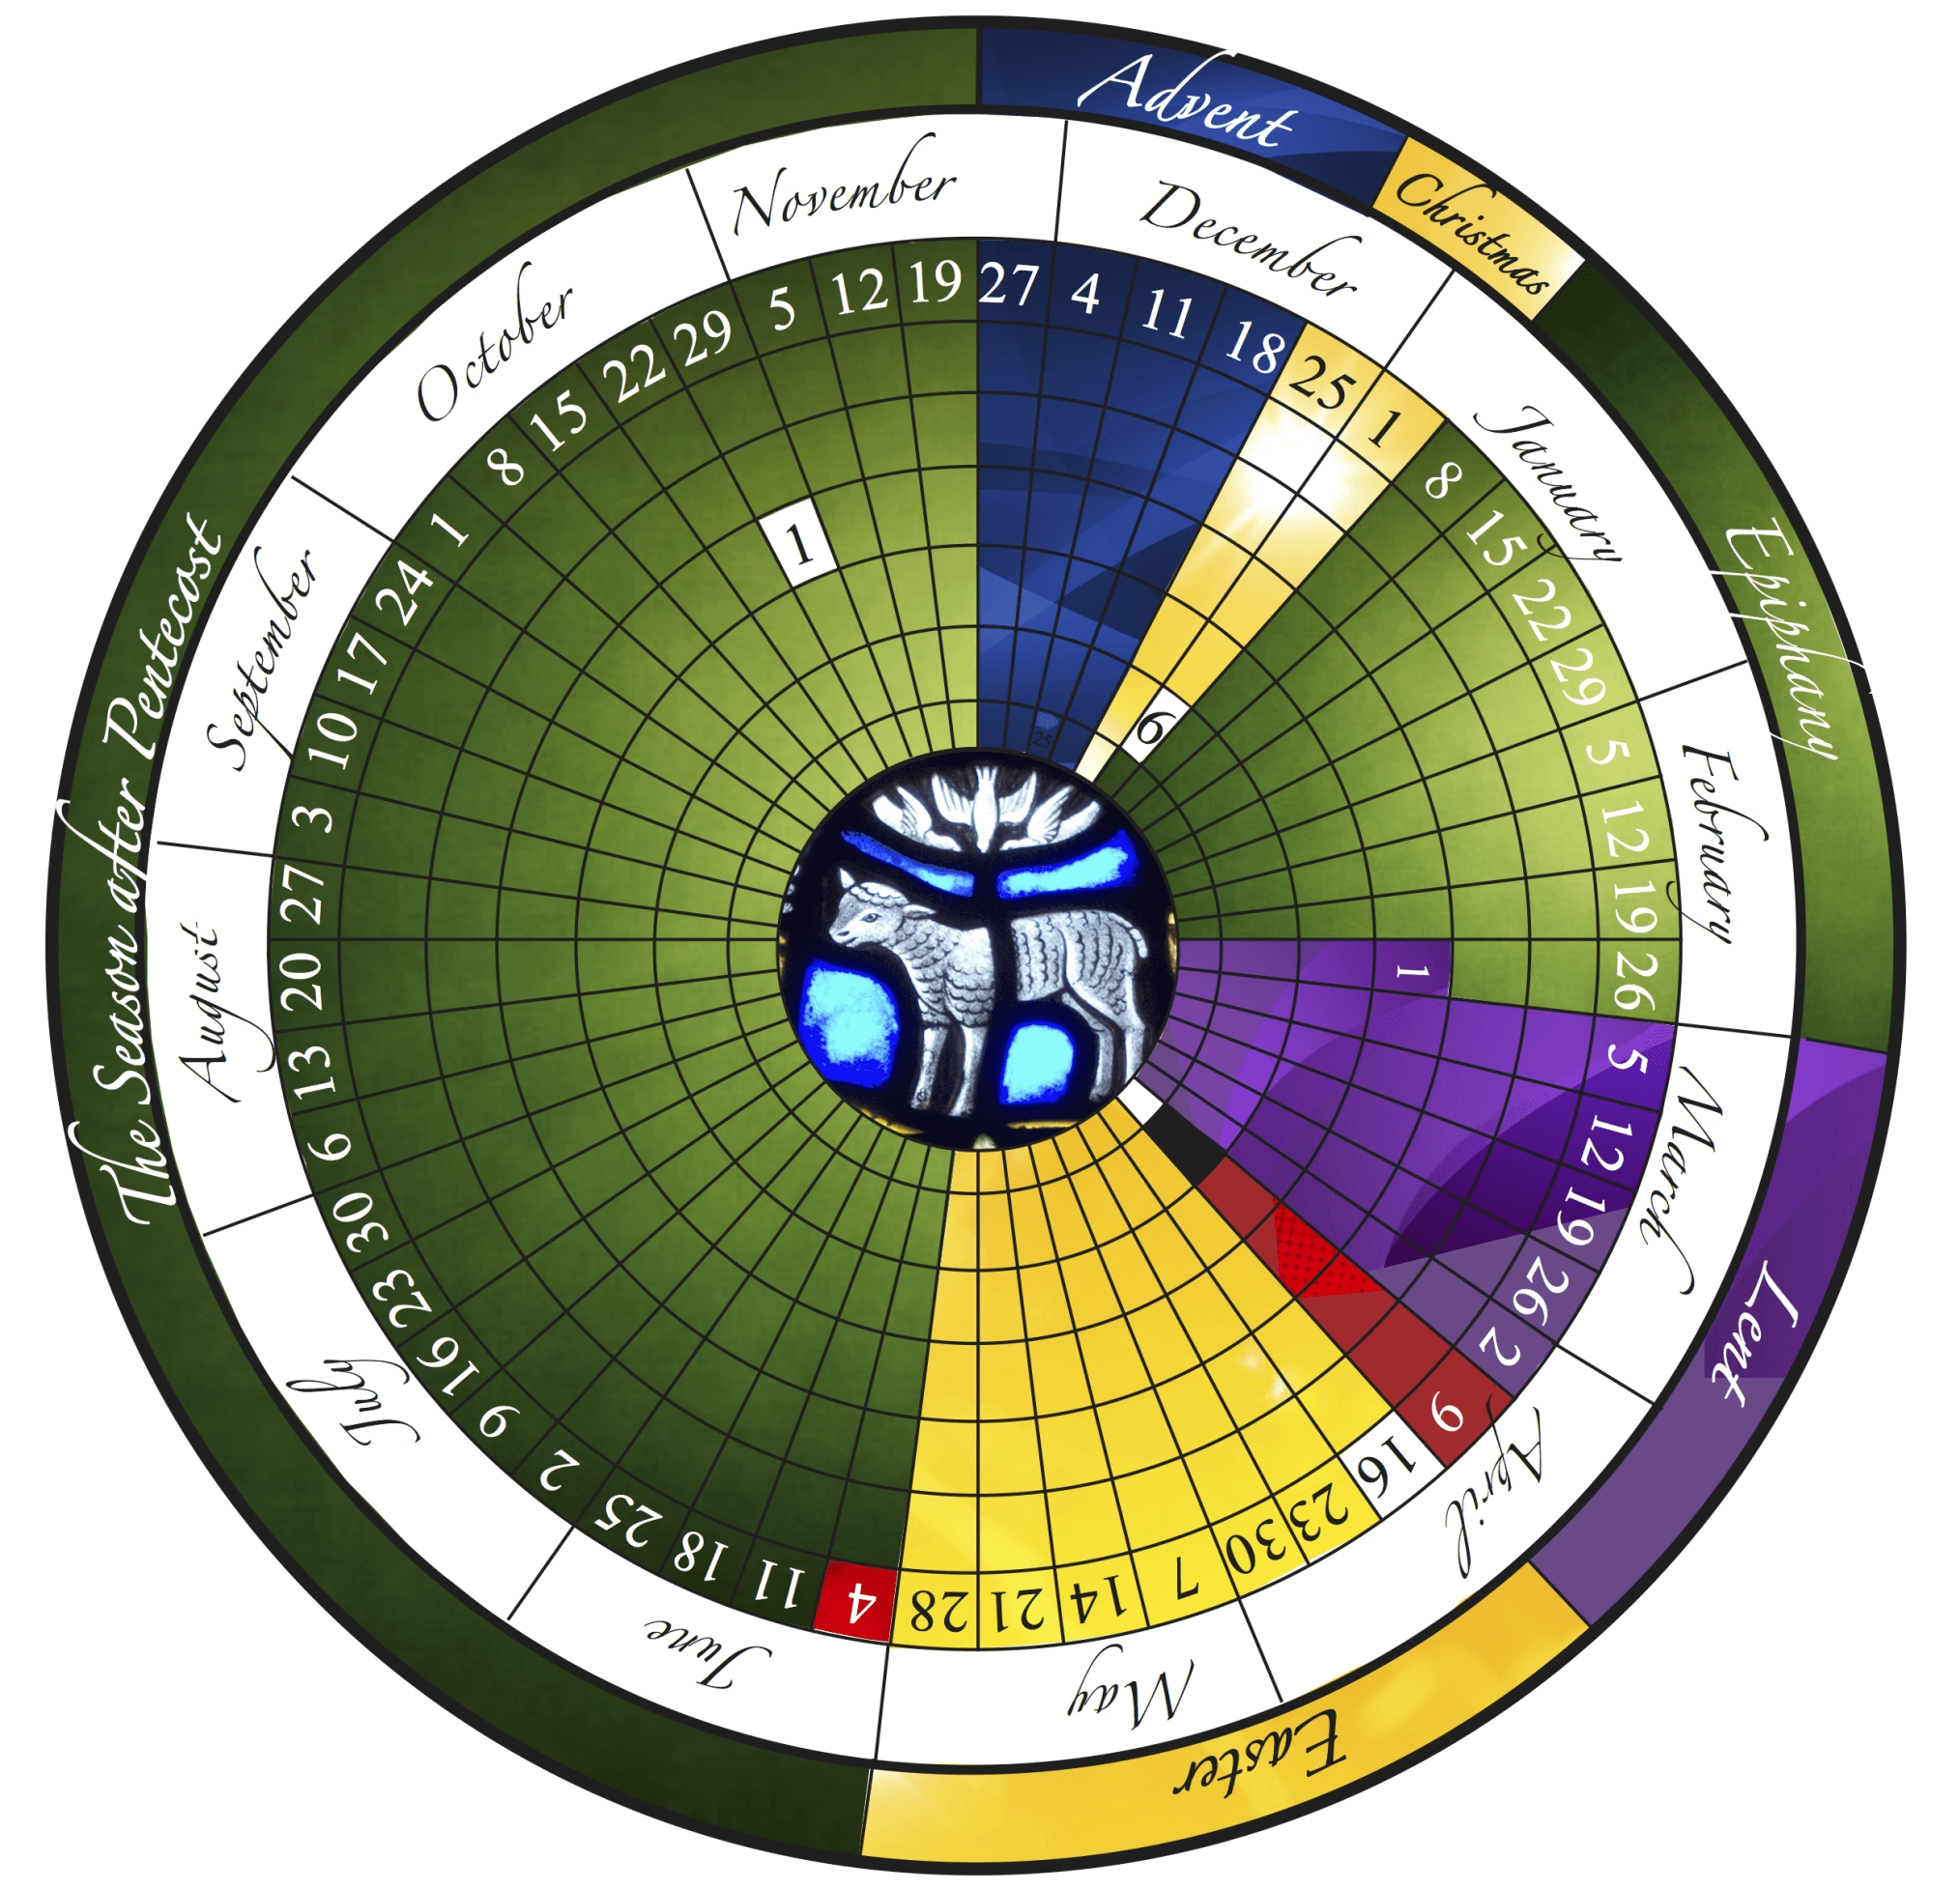 The Liturgical Year Explained (Plus Free Printable Calendar!) with regard to A Liturgical Calendar For The Year 2020